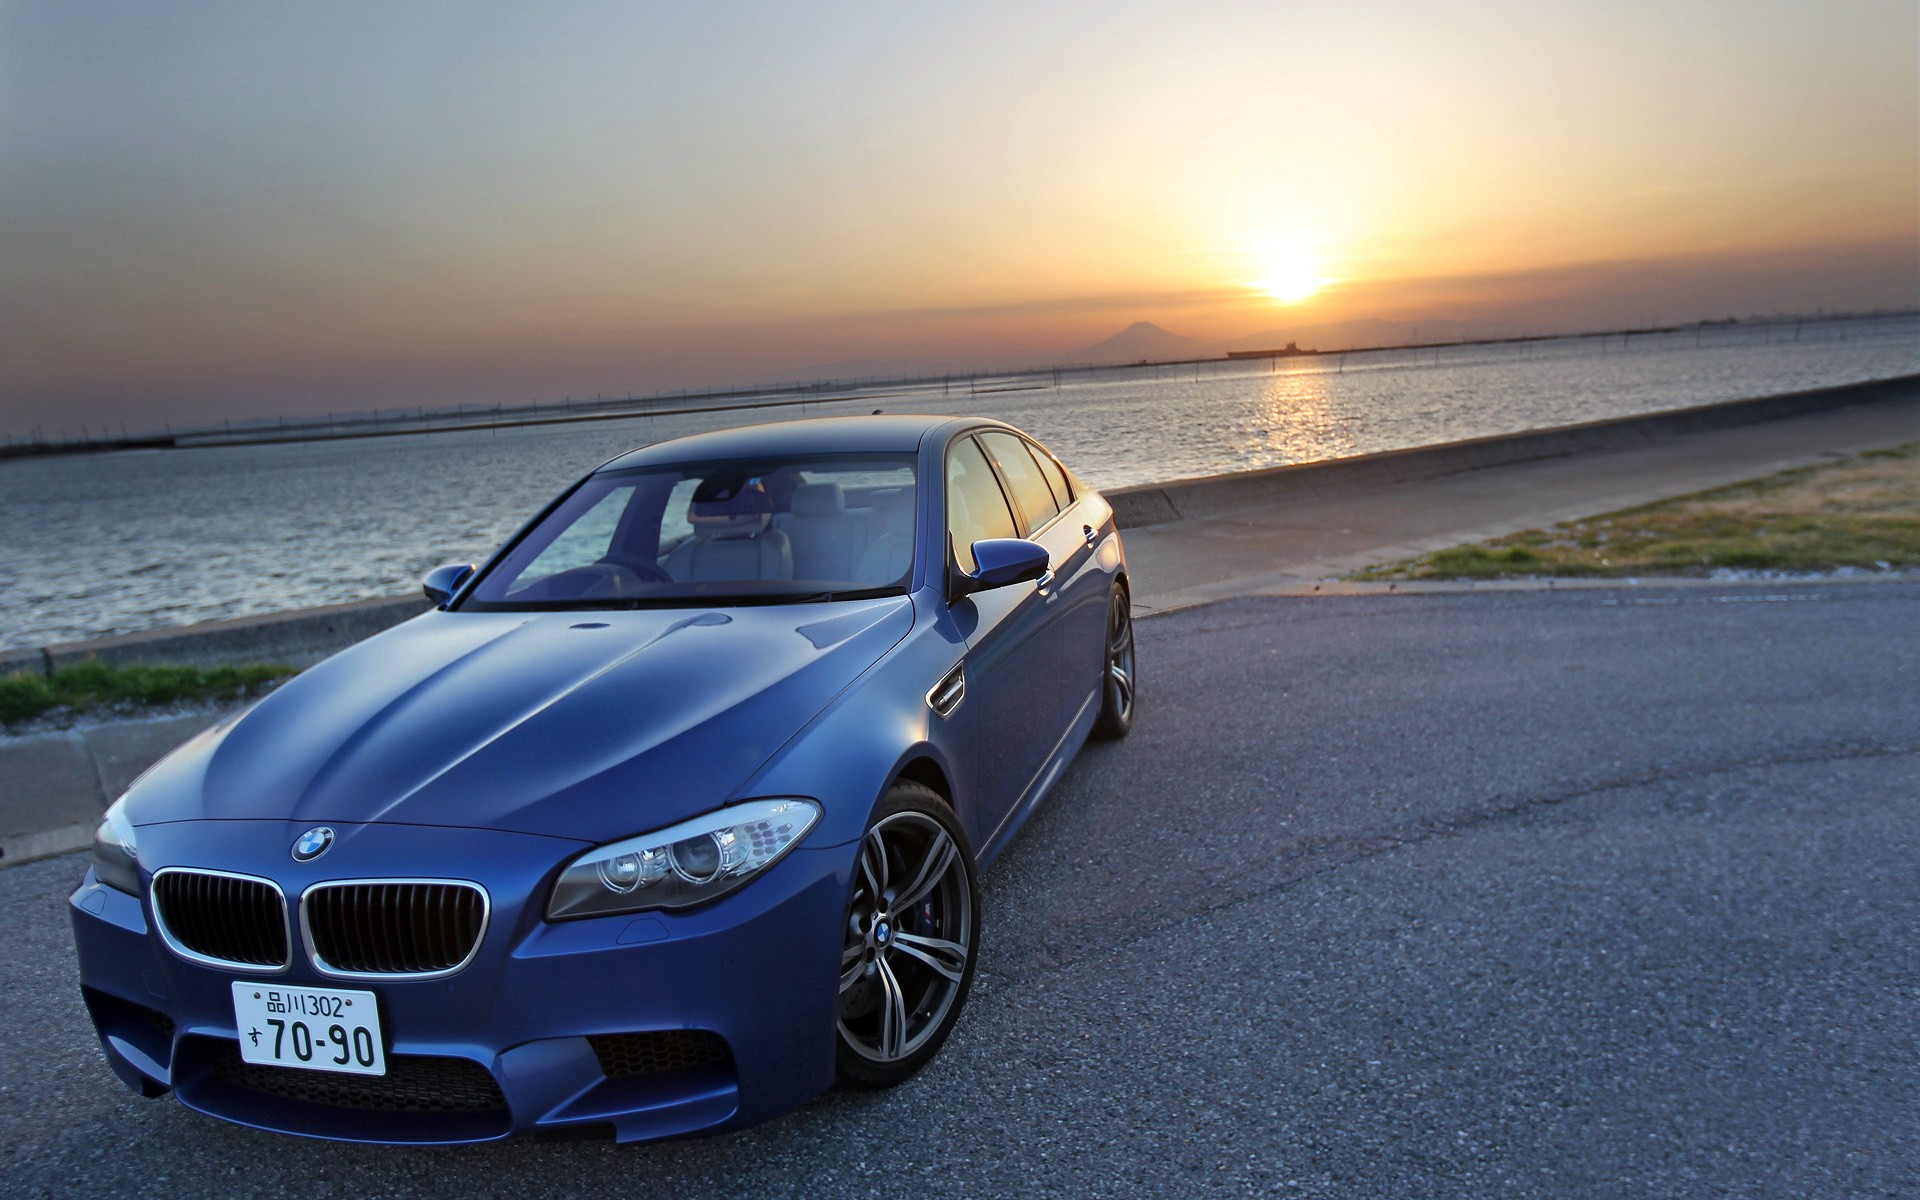 Bmw 5 Series Wallpaper Iphone The Bmw M5 Wallpaper Hd Car Wallpapers Id 2672